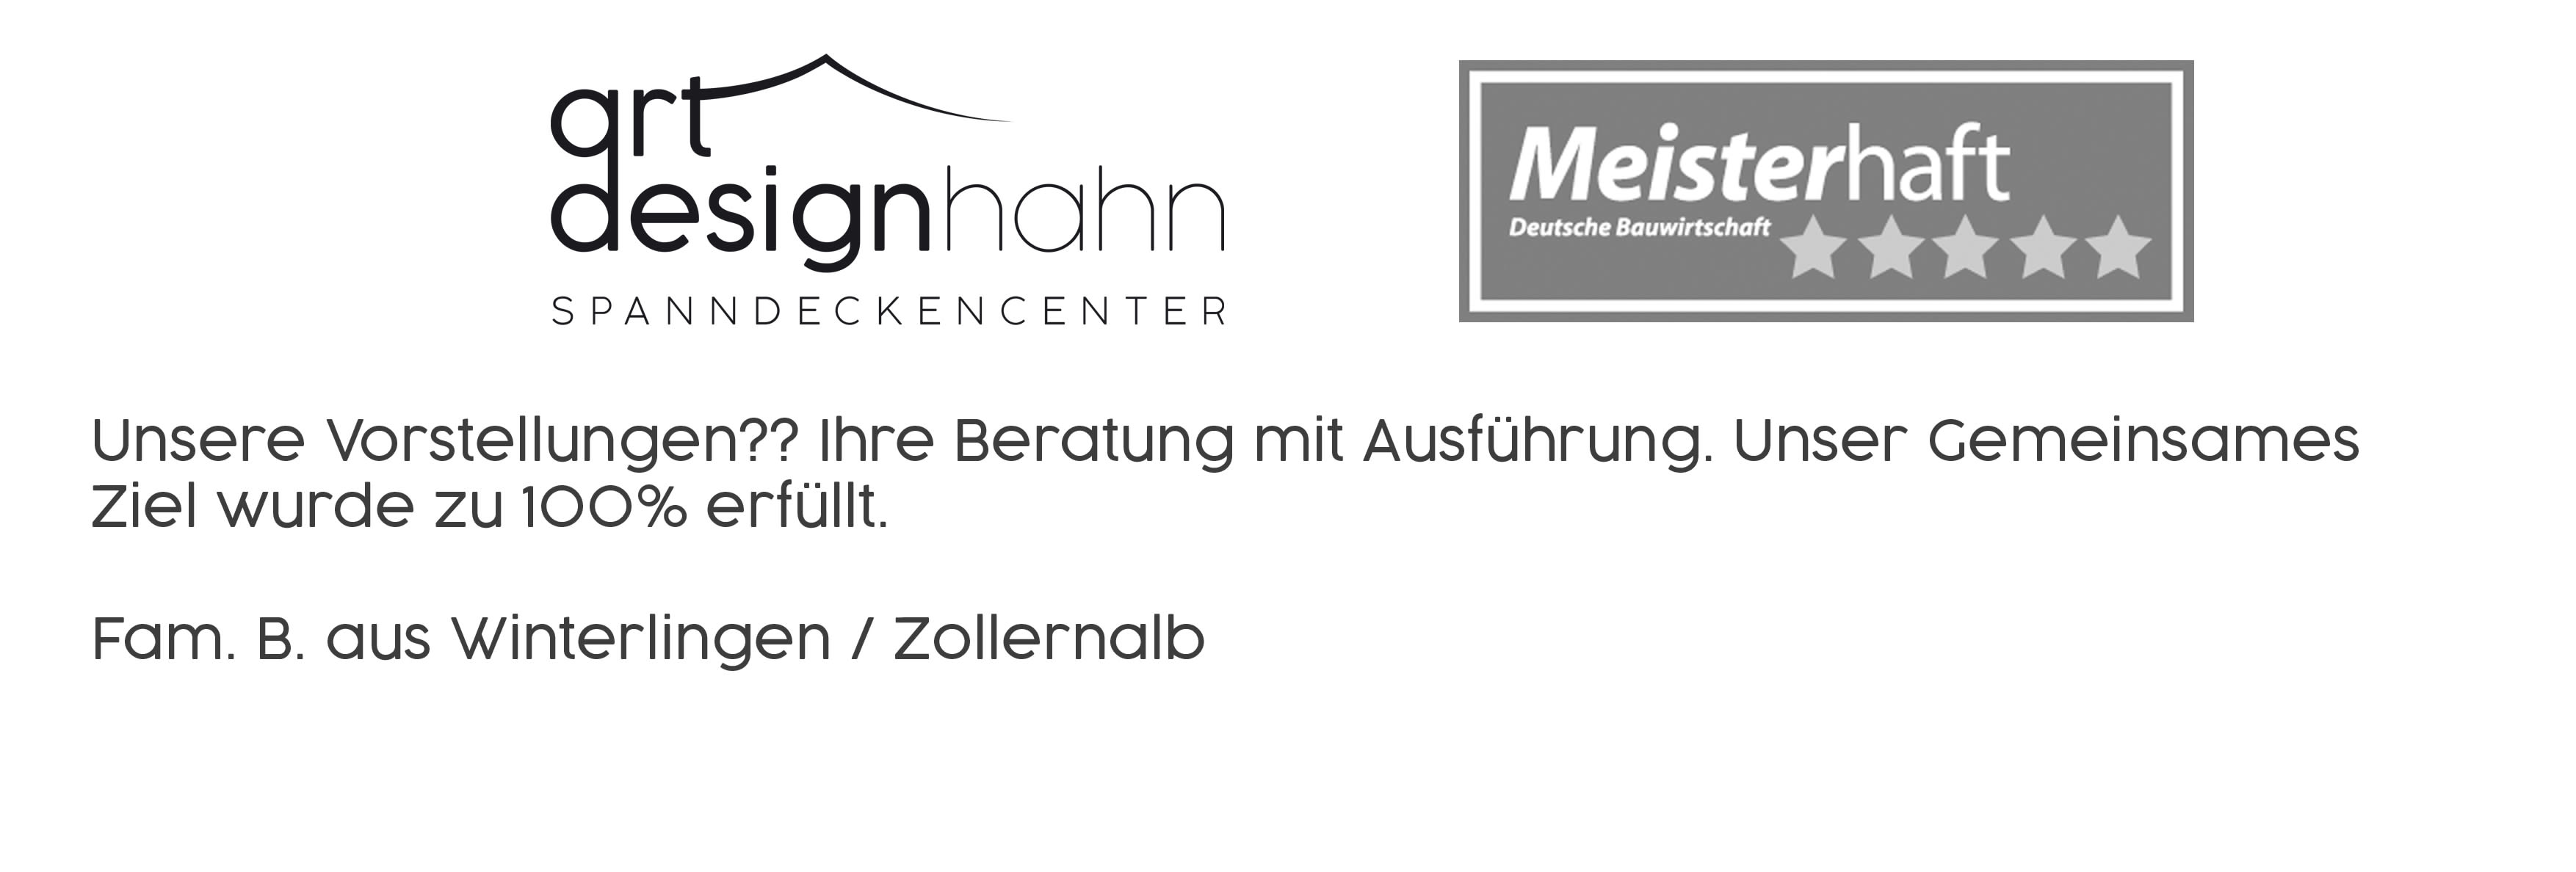 Art Design Hahn Meisterhafte Rezension 10